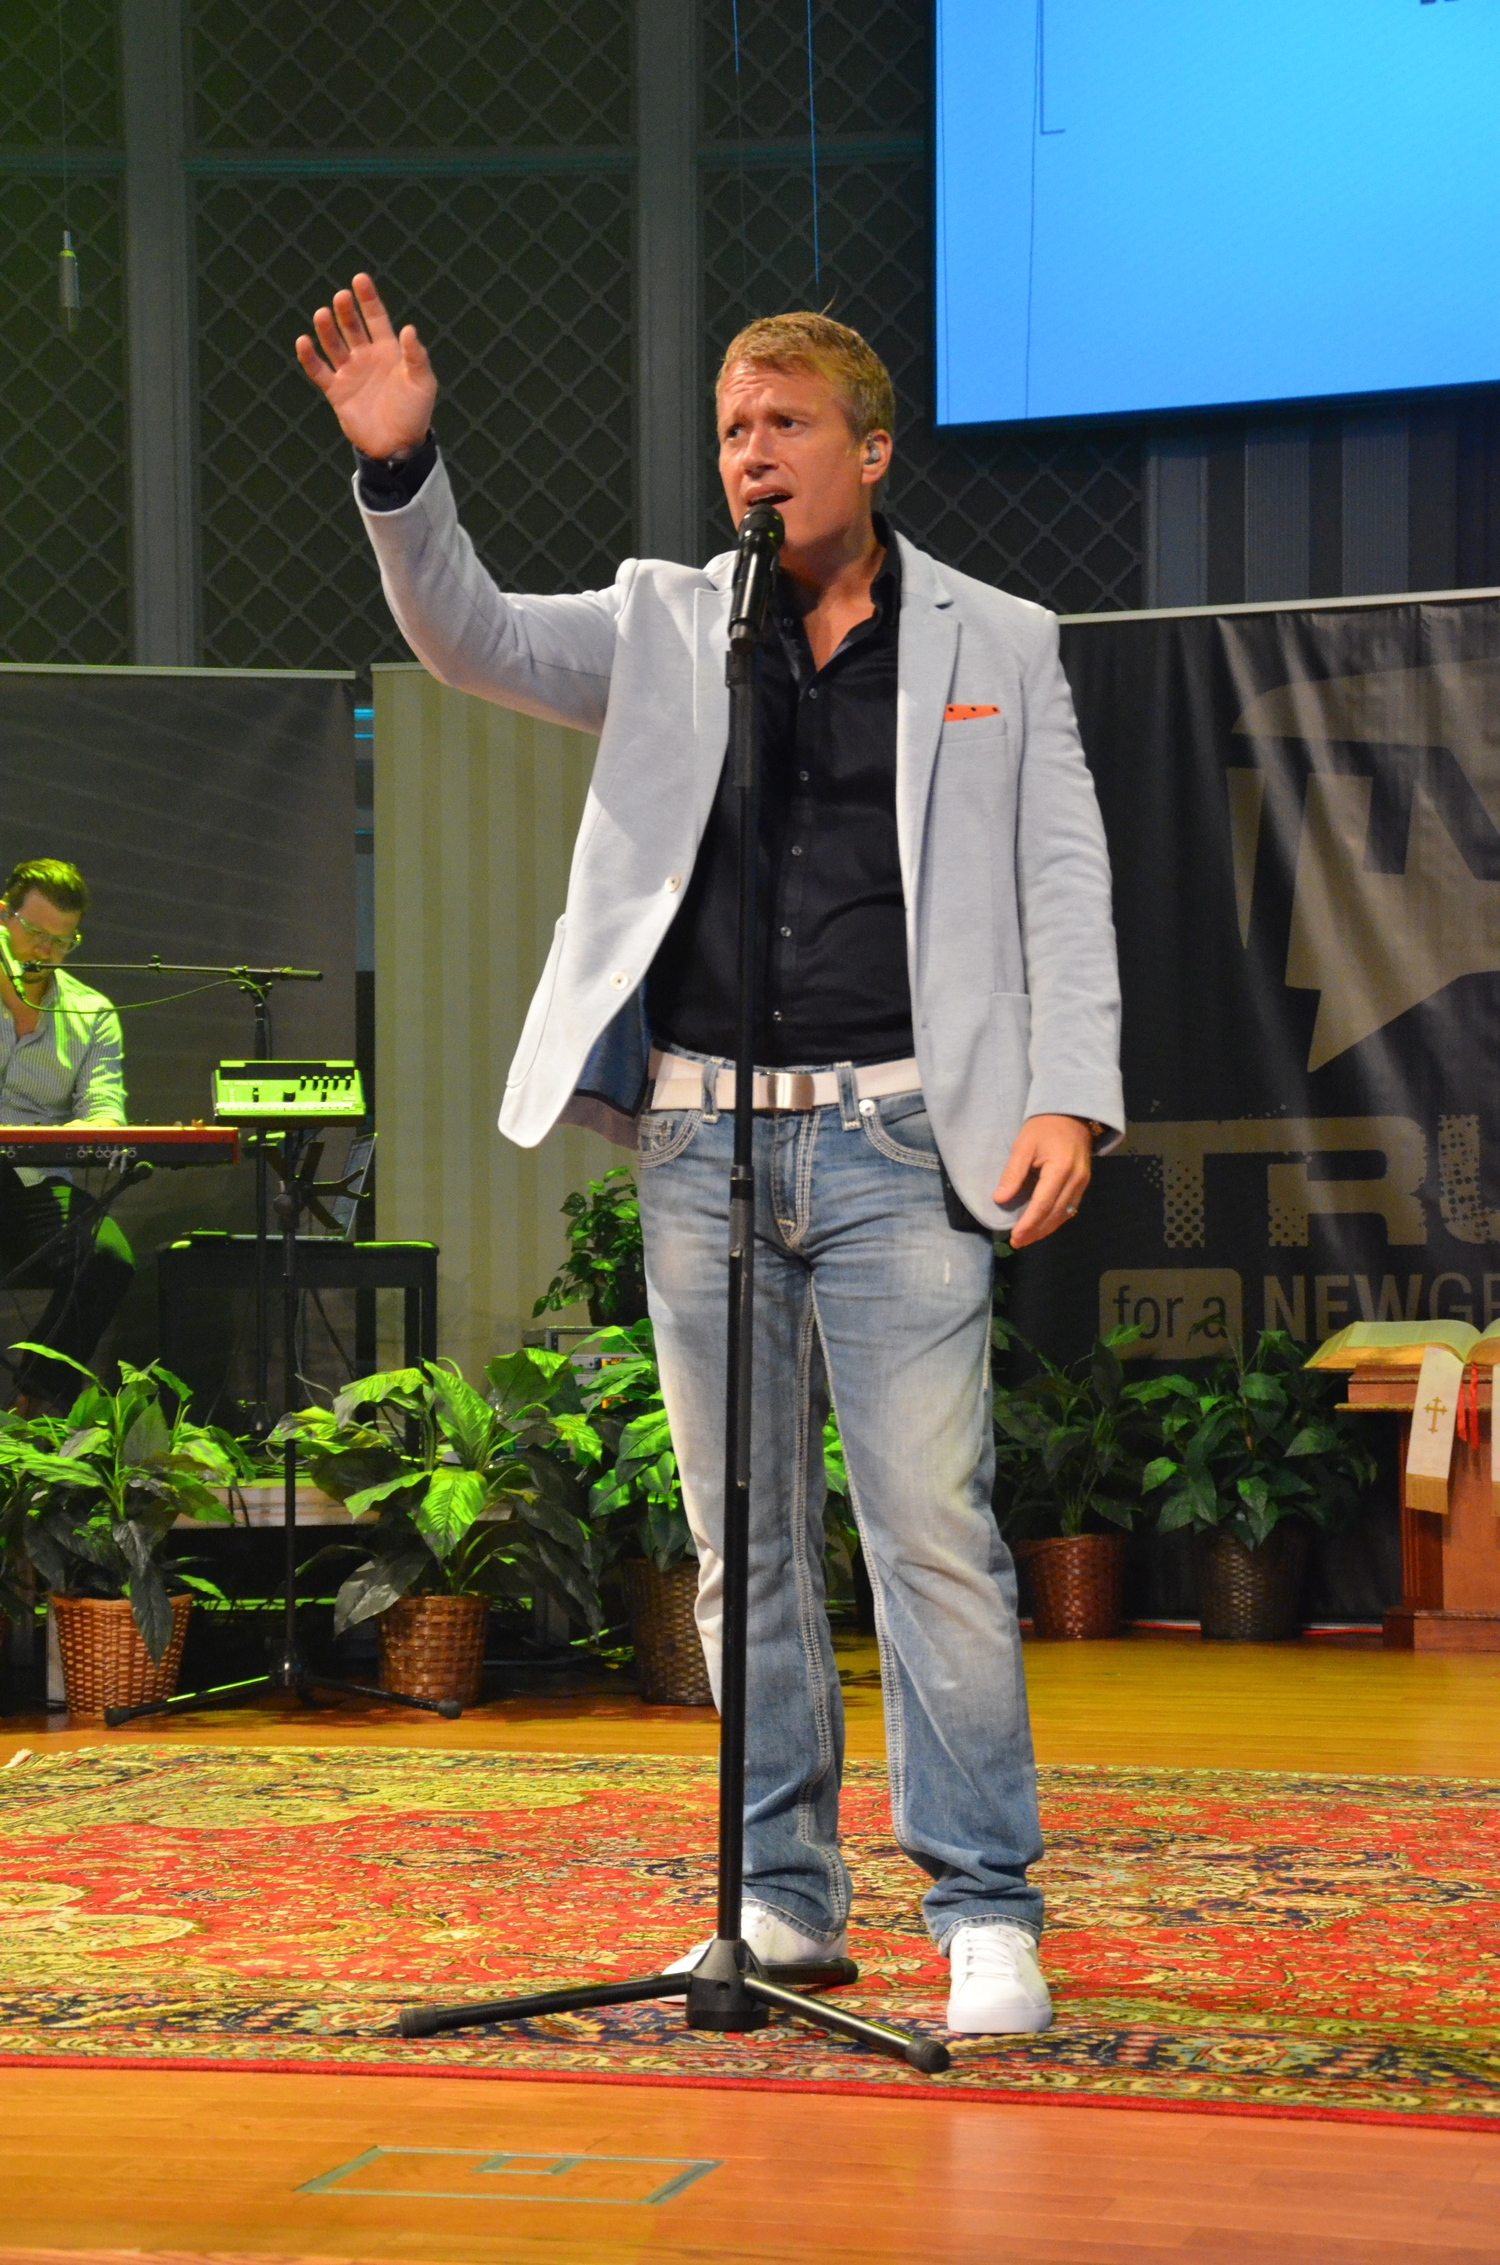 Charles Billingsley leads worship at the TNG conference September 5-6.